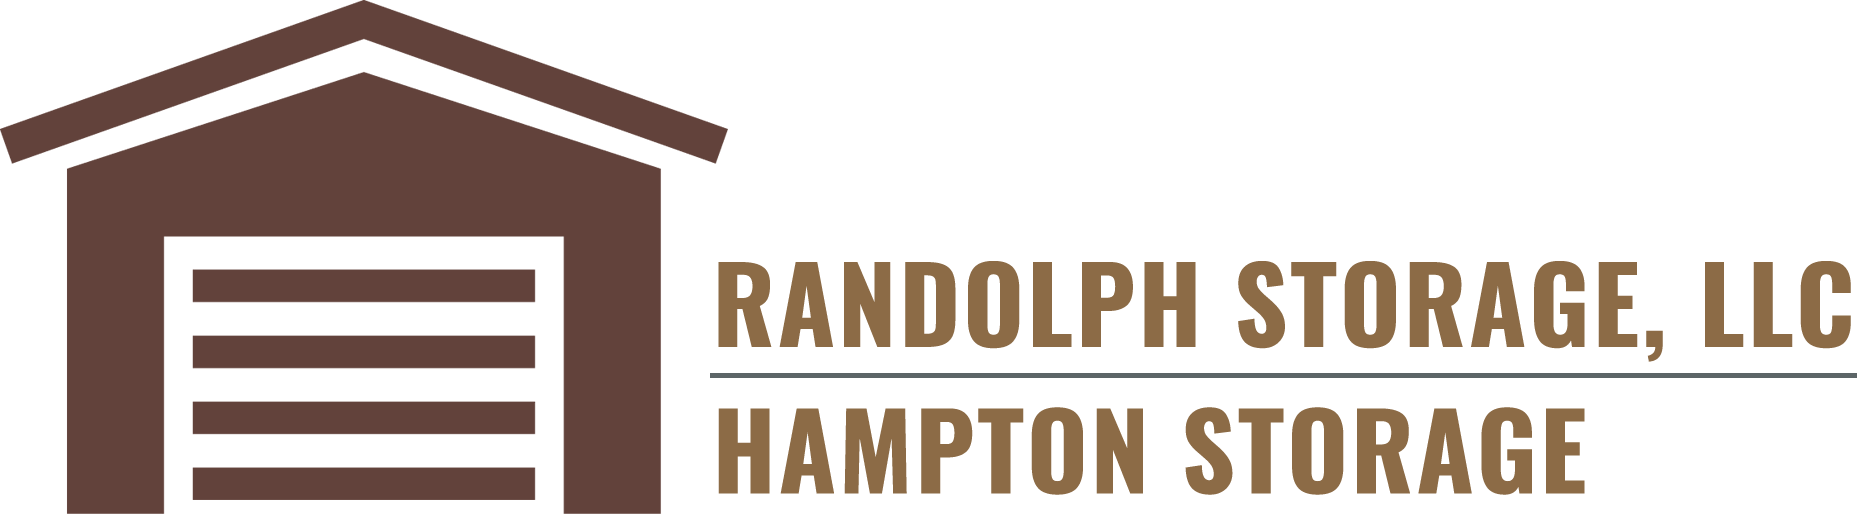 Garage Icon | Randolph Storage, LLC & Hampton Storage